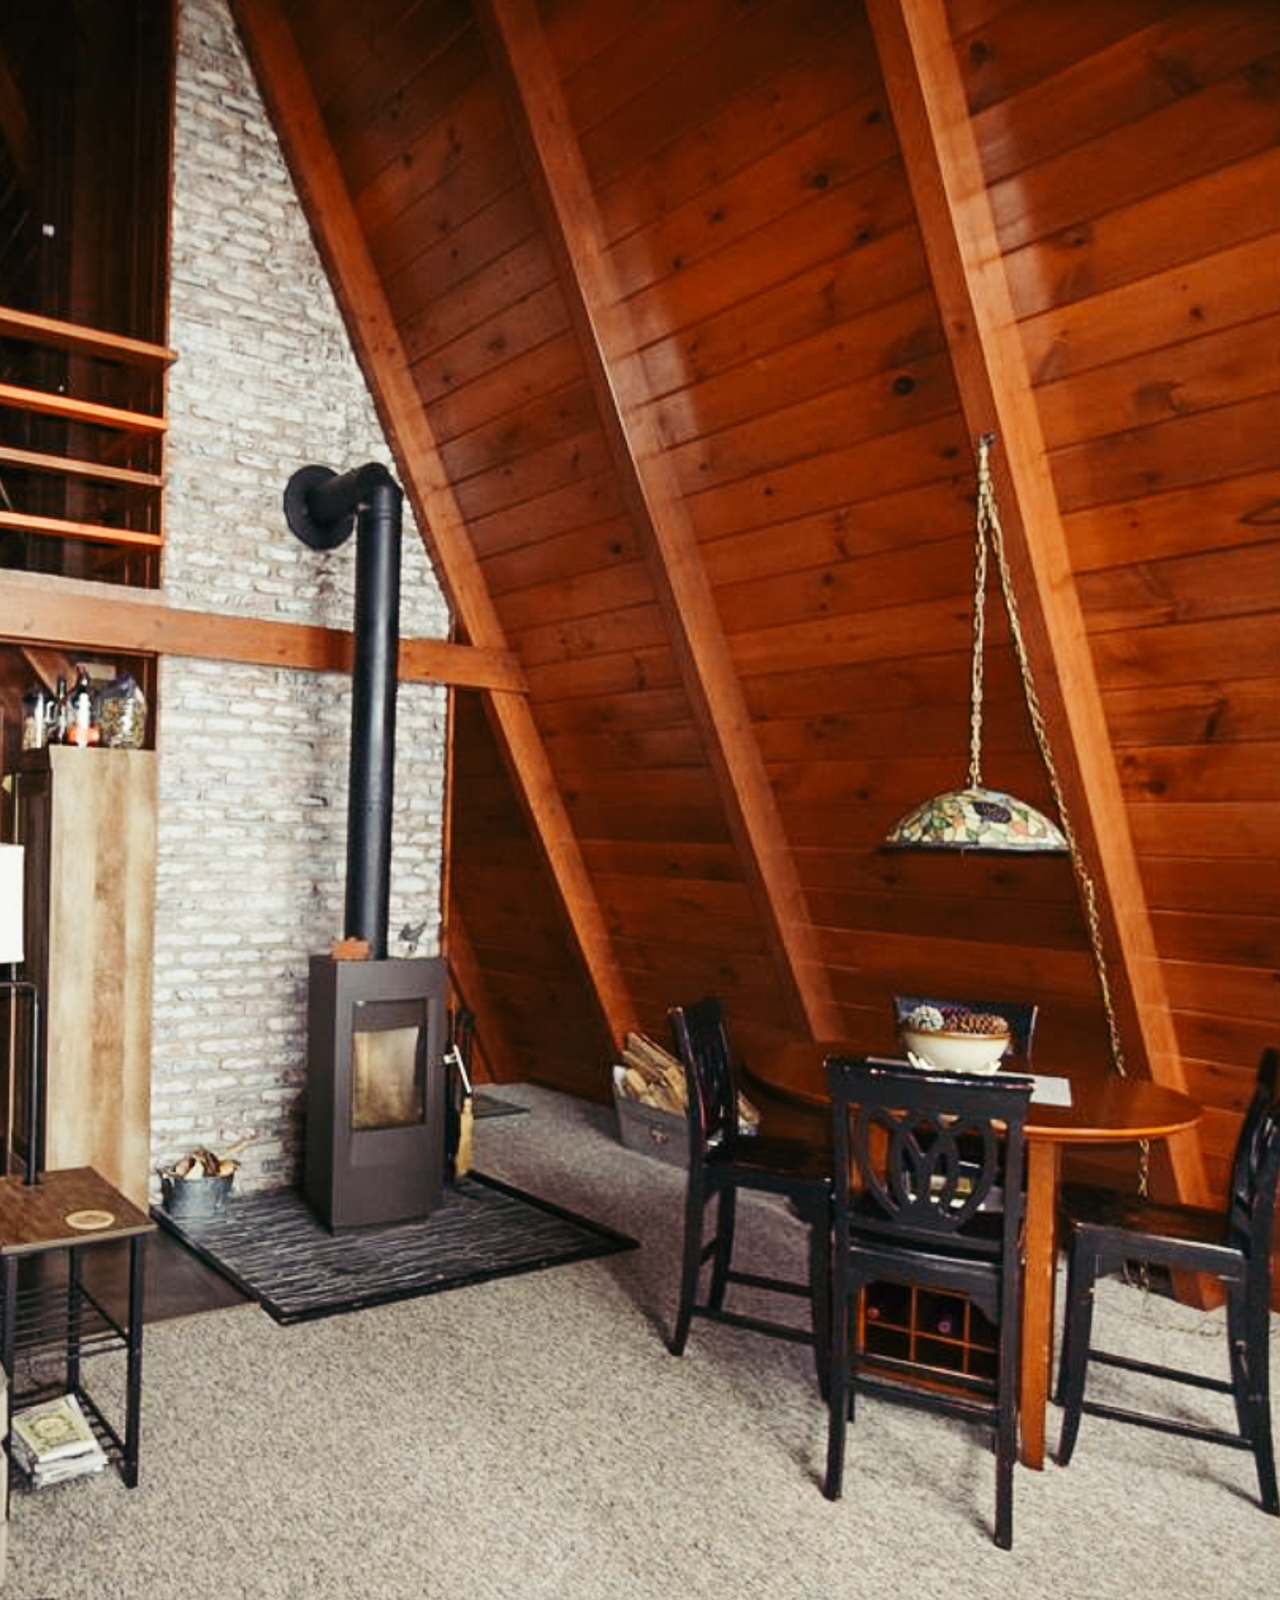 A Frame Cabin Rentals In Wisconsin As soon as you take off your bathrobe, your everyday life falls away too a frame cabin rentals in wisconsin